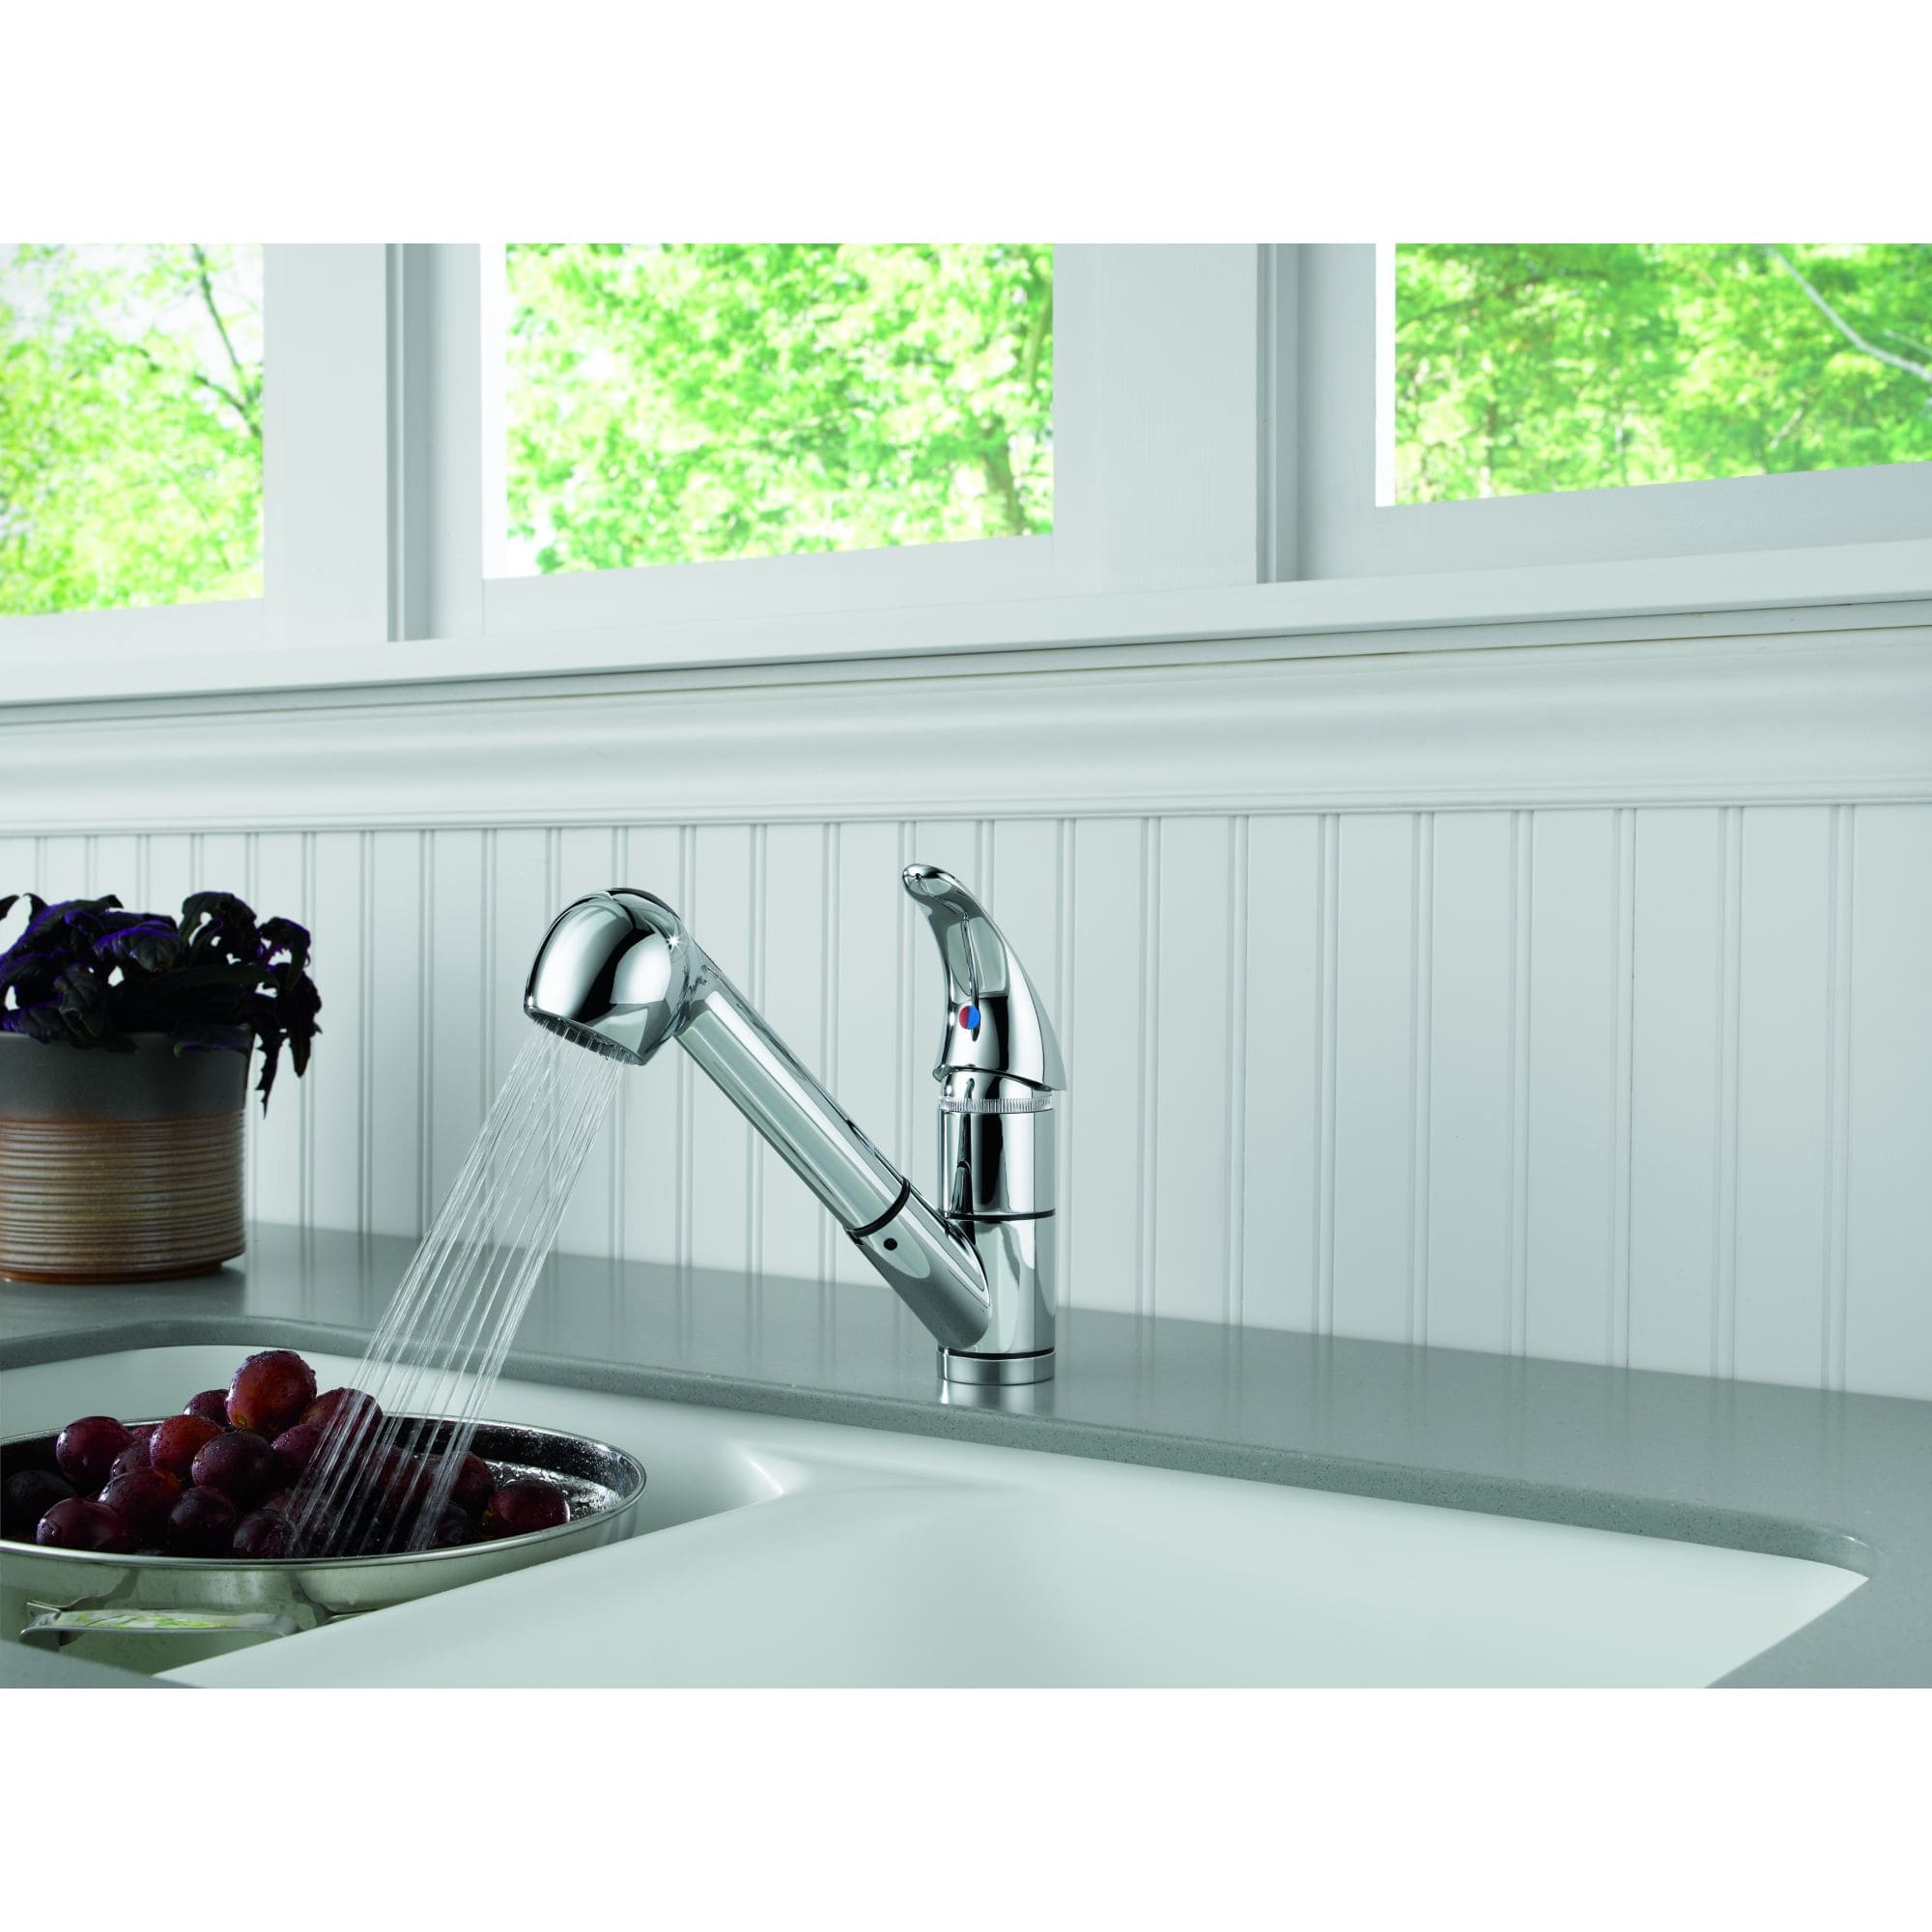 Enchanting Peerless Kitchen Faucet Image - Faucet Collections ...